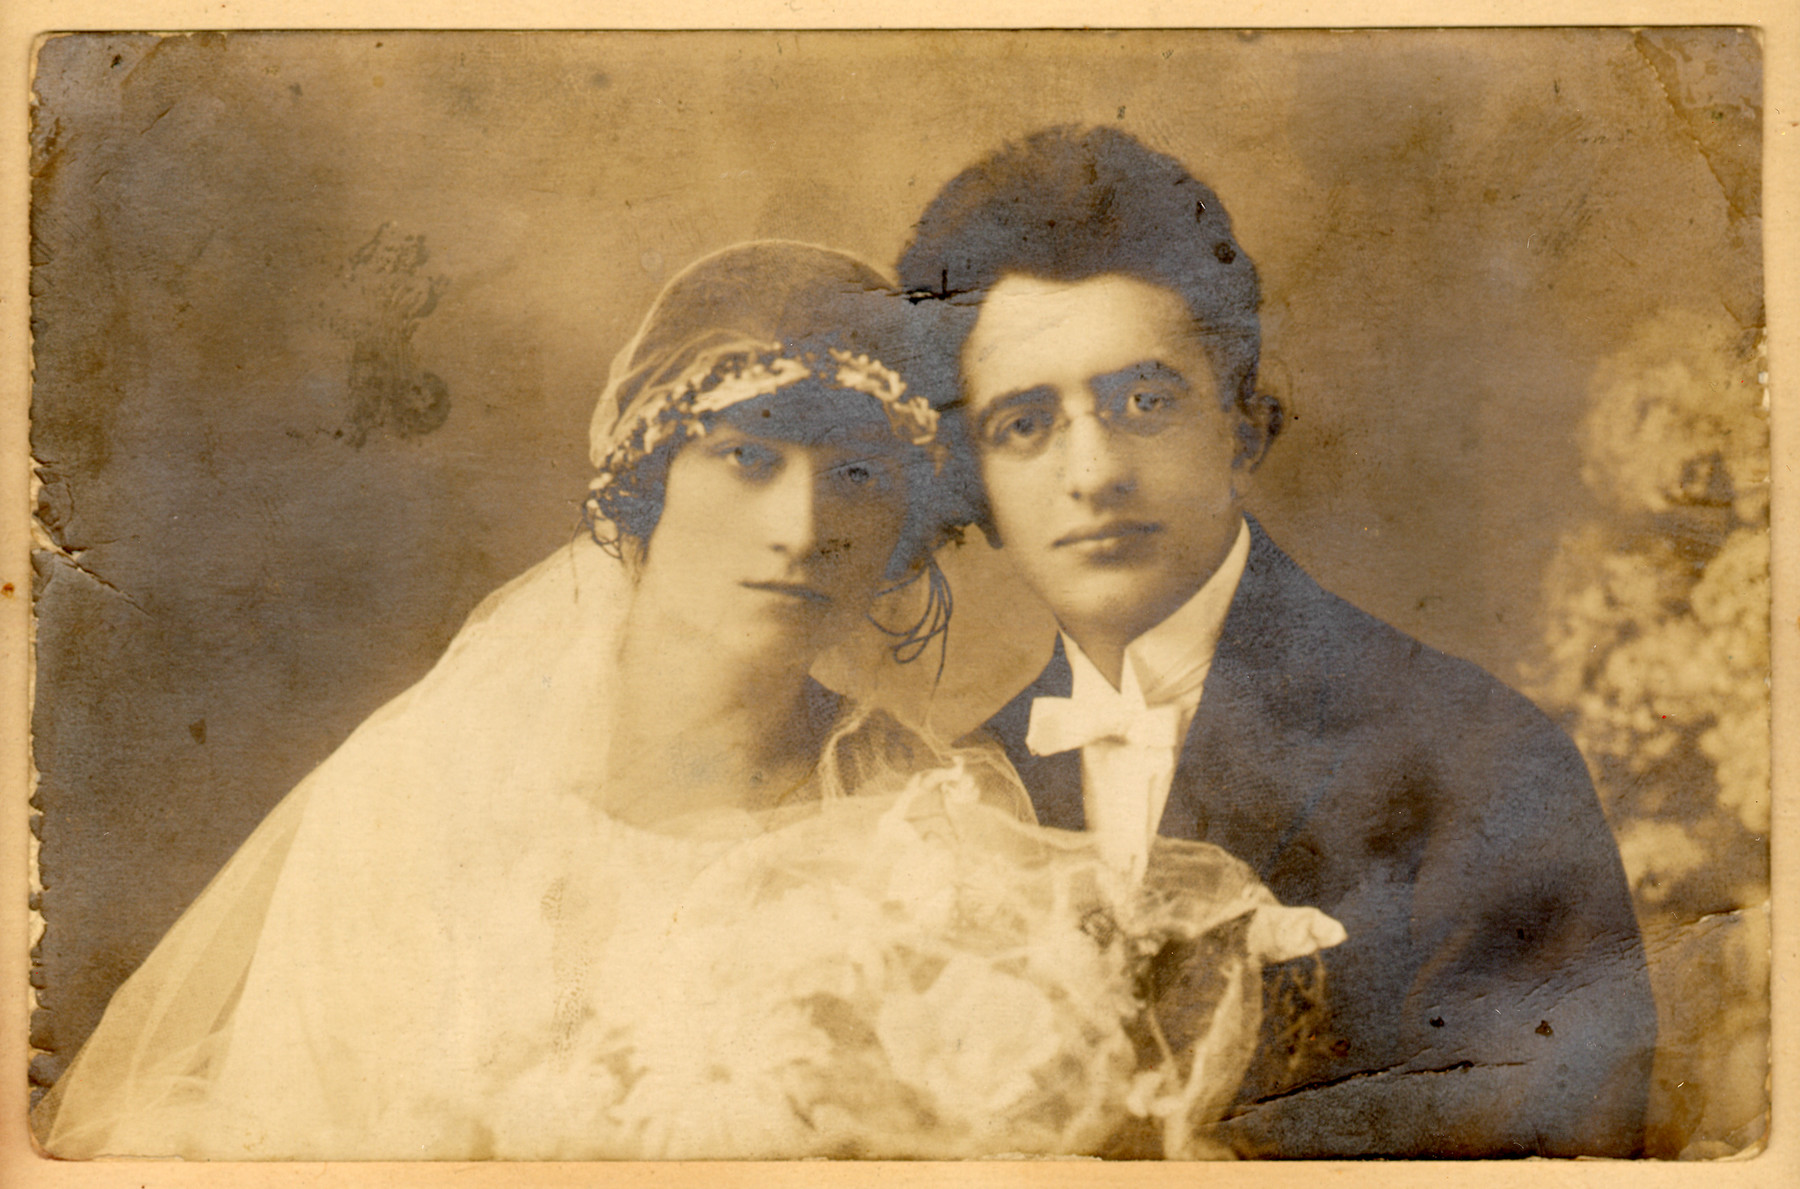 Wedding portrait of a young couple in Drohobycz.  Pictured are Herman Lustig and Otilia Graumann Lustig.